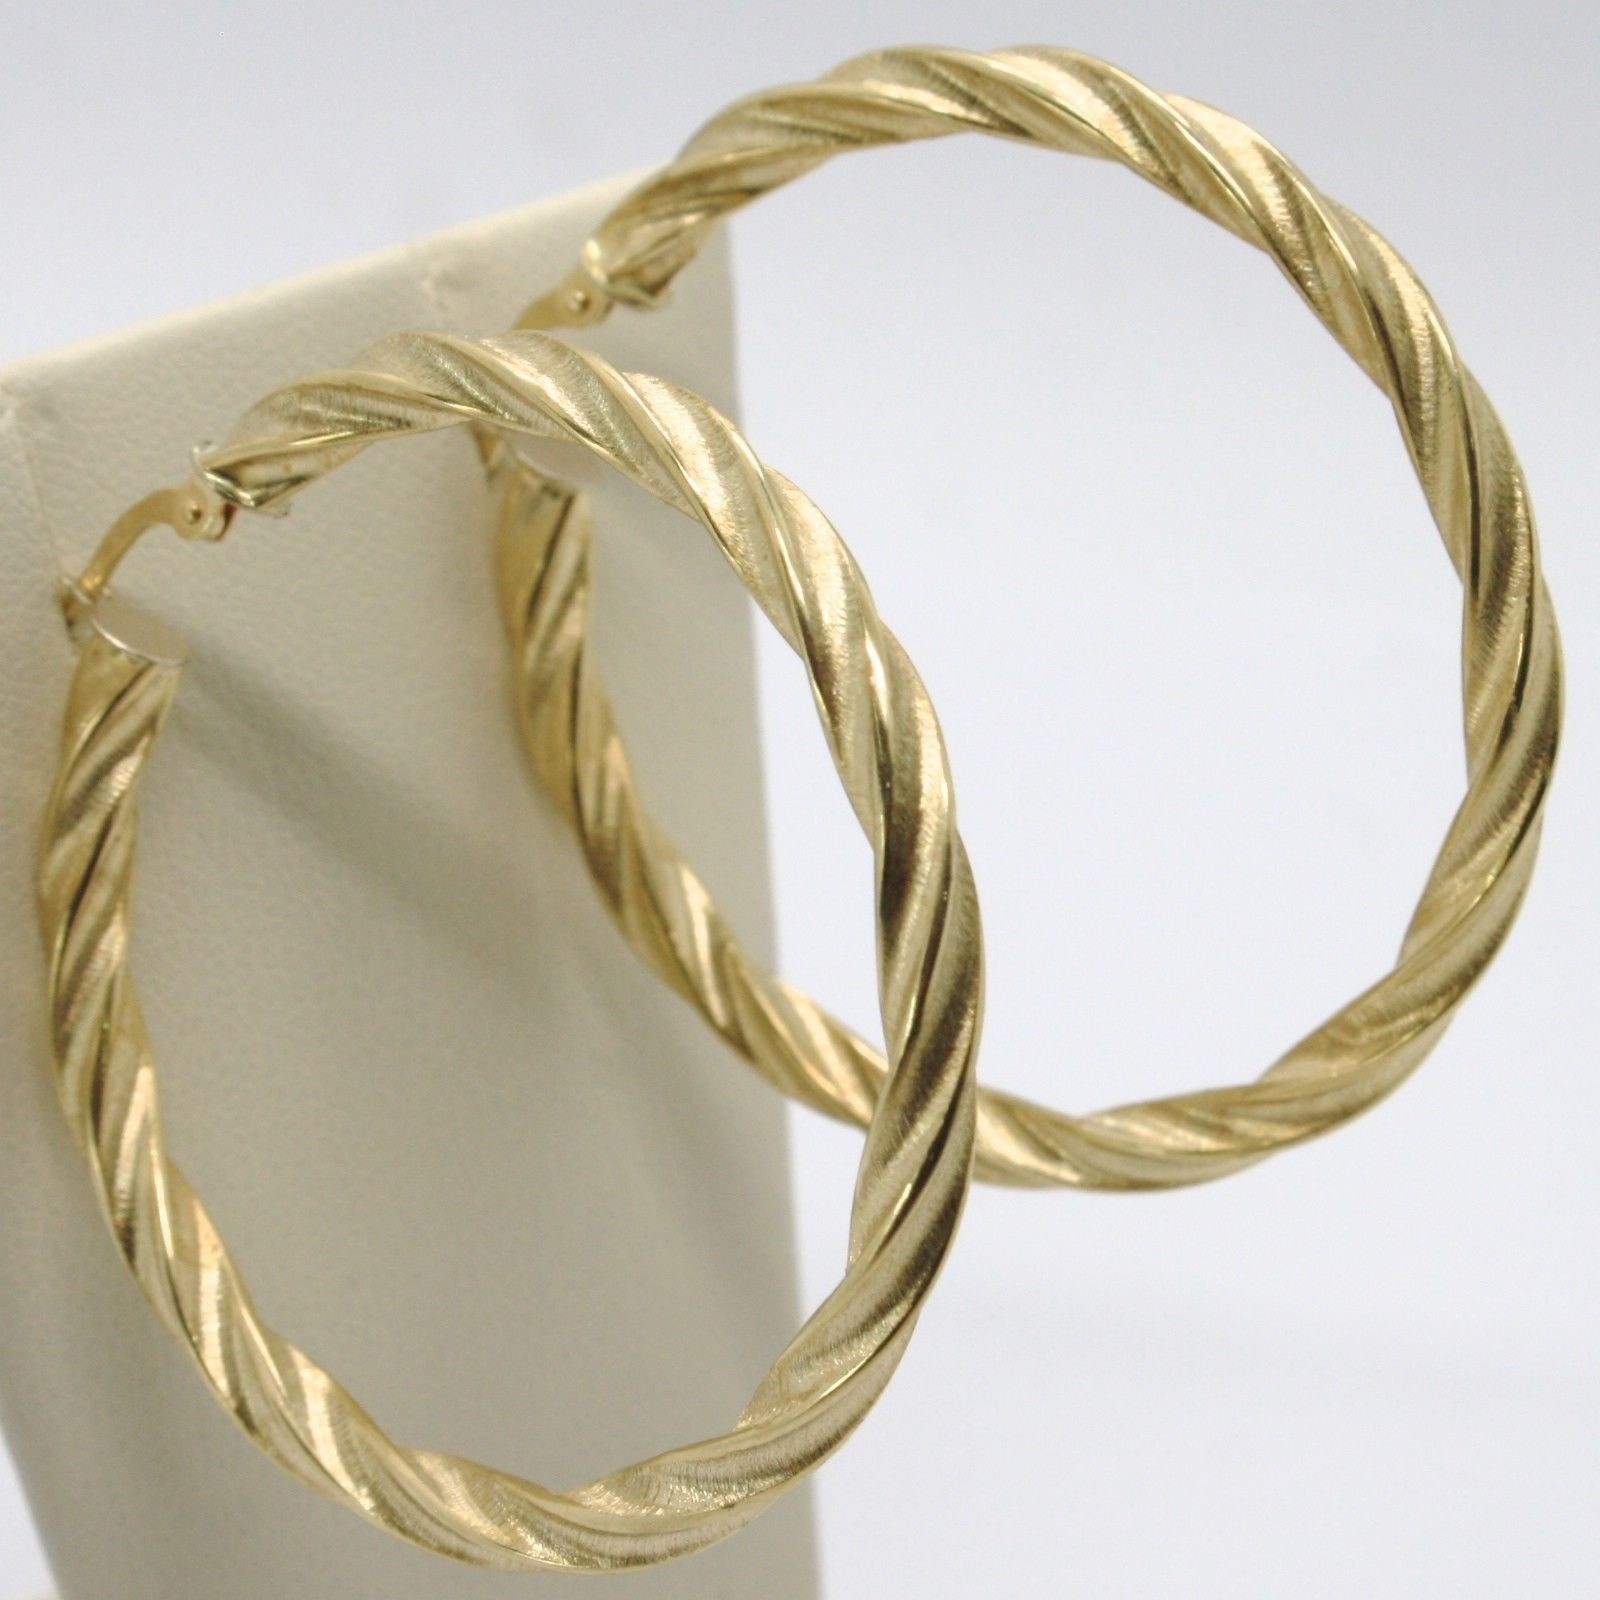 18K YELLOW GOLD CIRCLE HOOPS TUBE TWISTED SATIN BIG EARRINGS 50 MM MADE IN ITALY